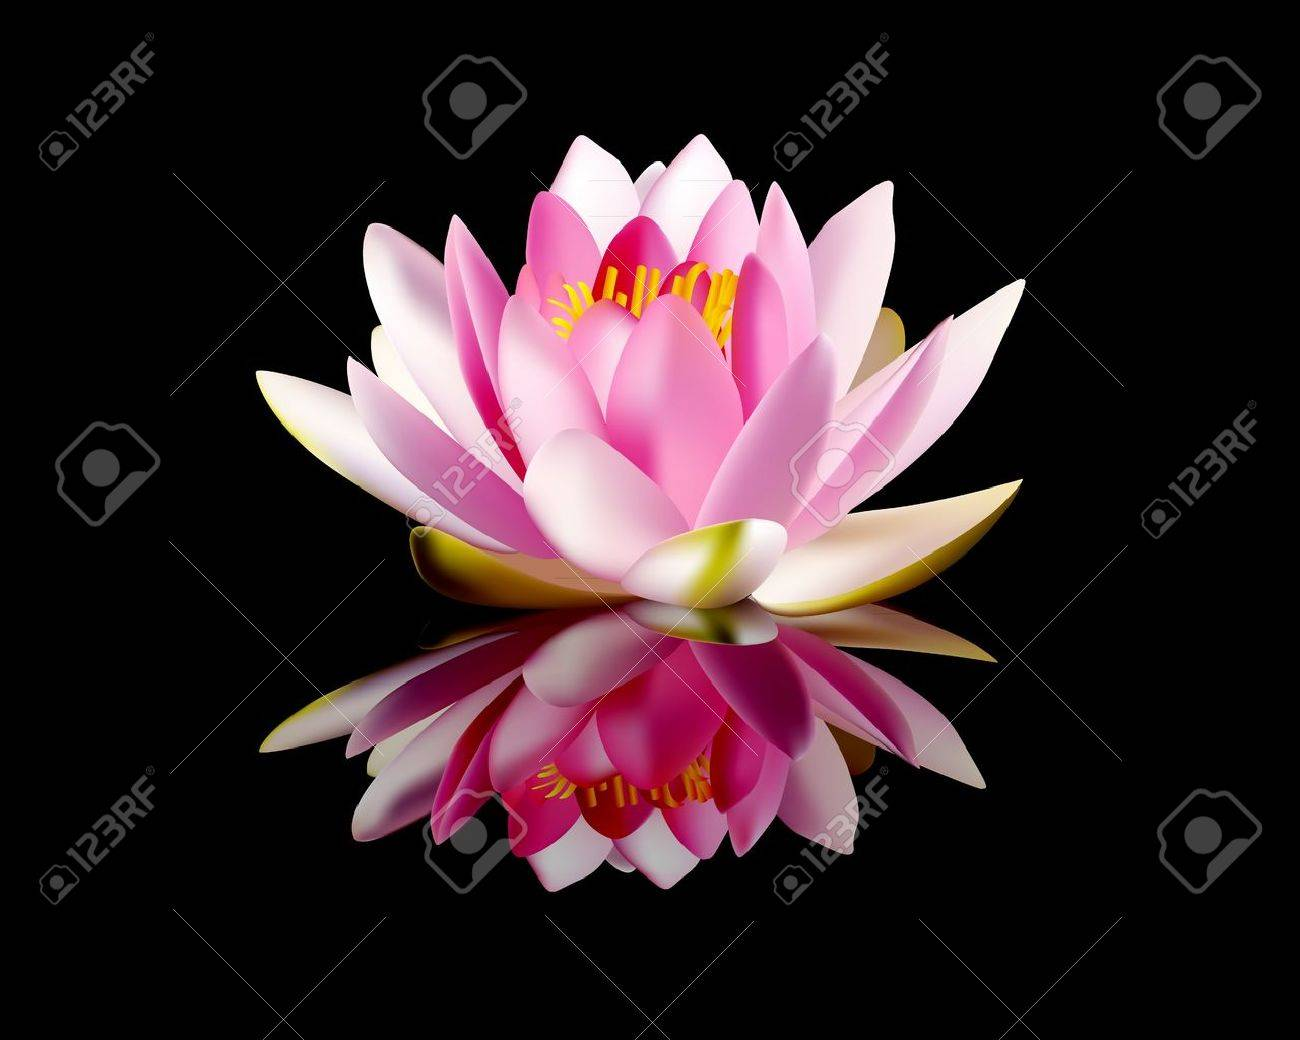 Water lily images stock pictures royalty free water lily photos water lily pink water lily on a black background dhlflorist Images